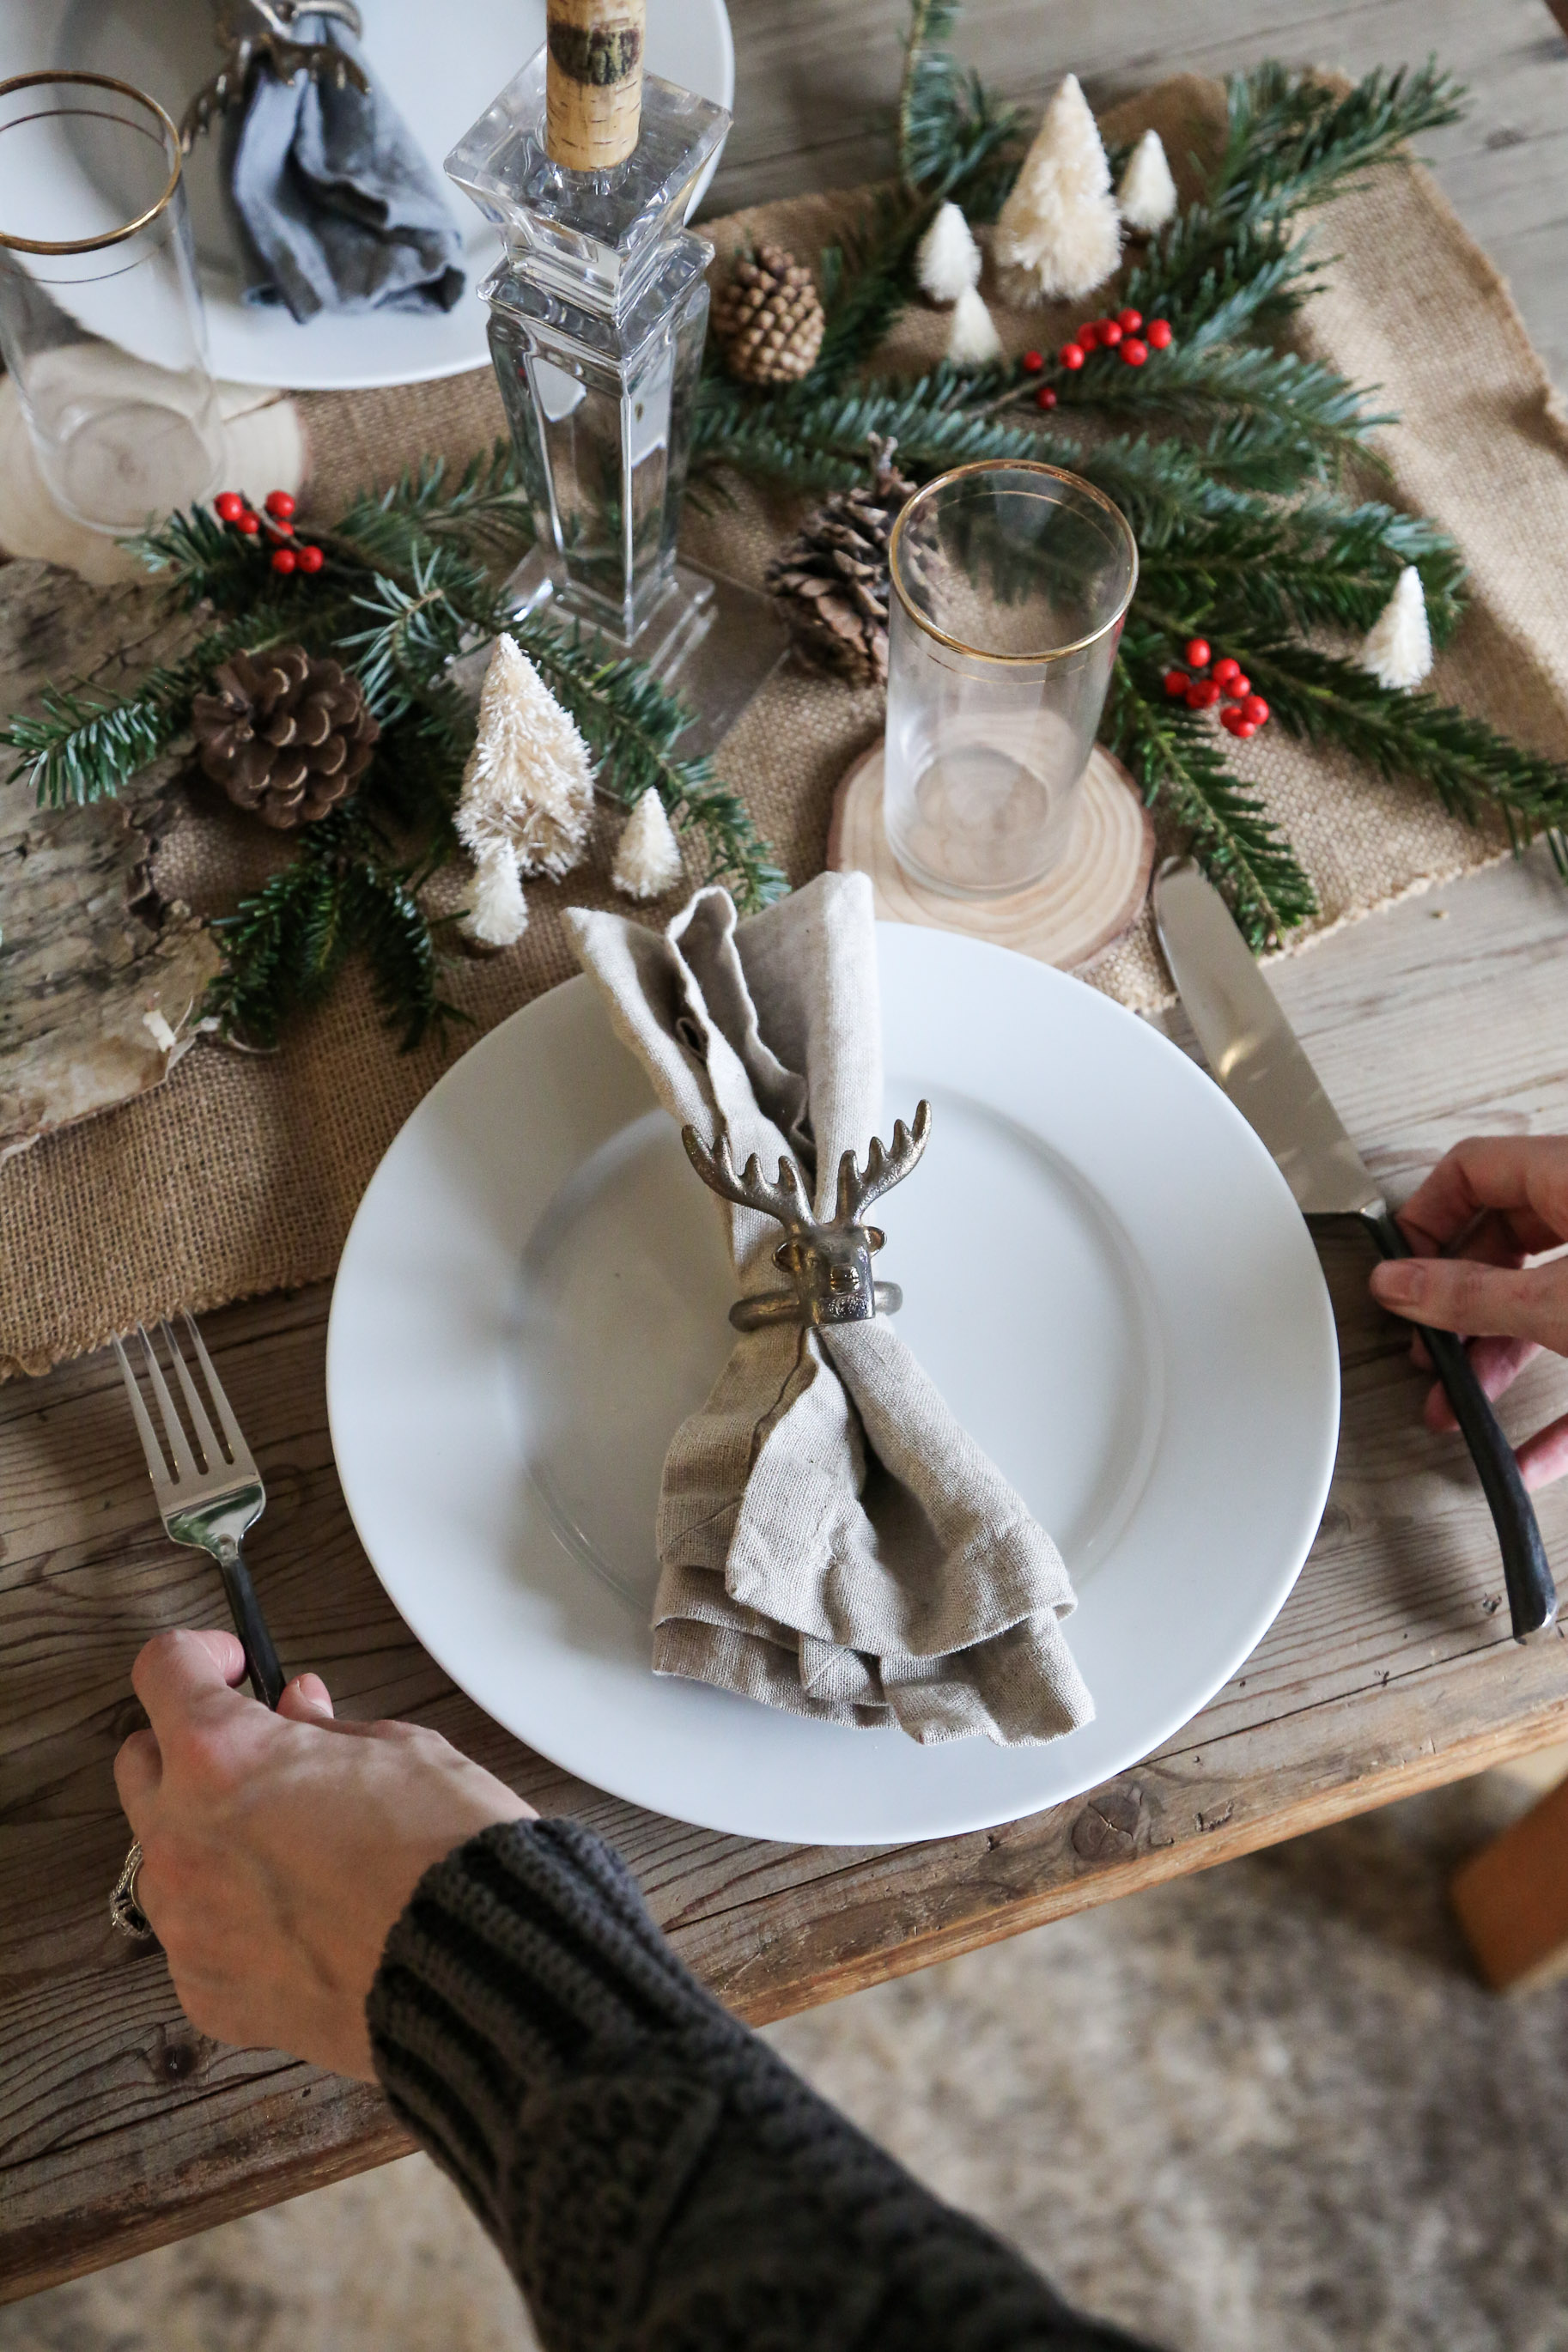 How-to-create-a-rustic-cozy-winter-woods-tablescape-for-the-holidays11.jpg